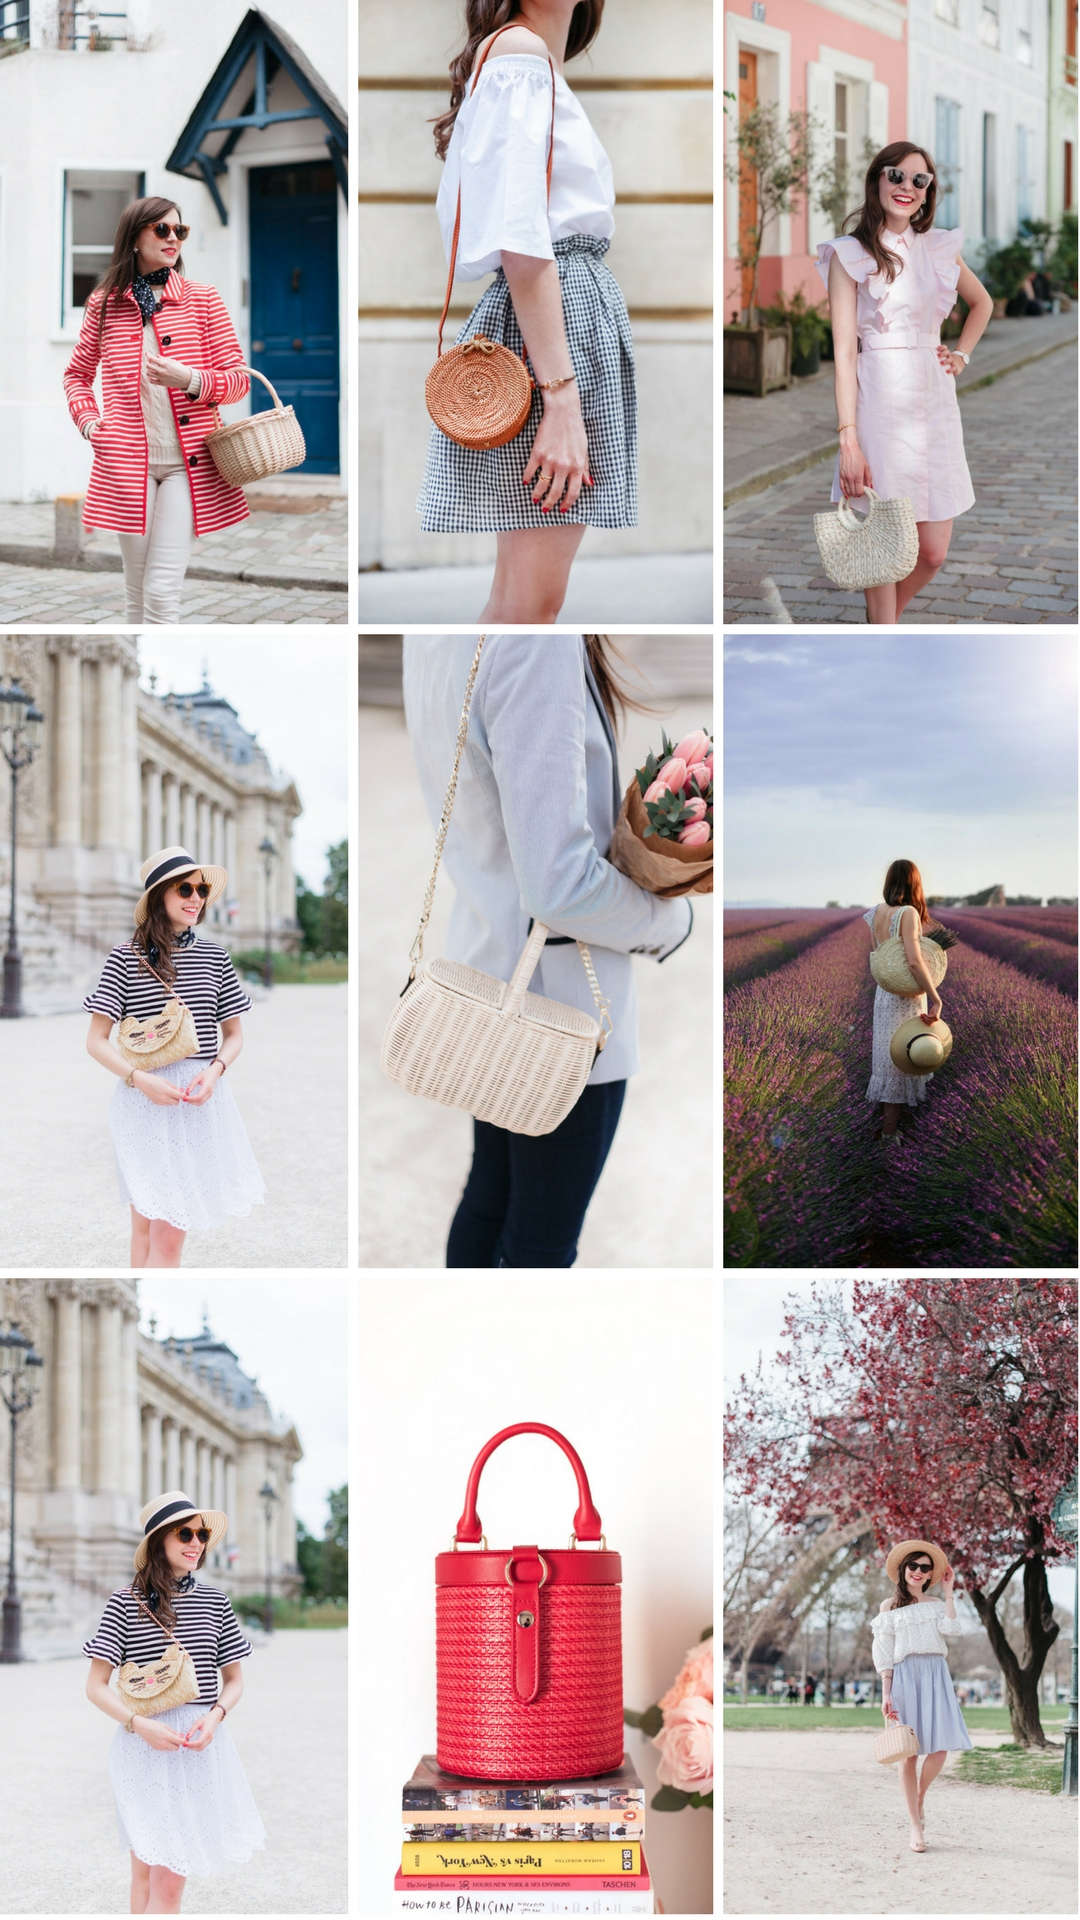 Blog-Mode-And-The-City-Lifestyle-Paniers-pour-printemps-ete